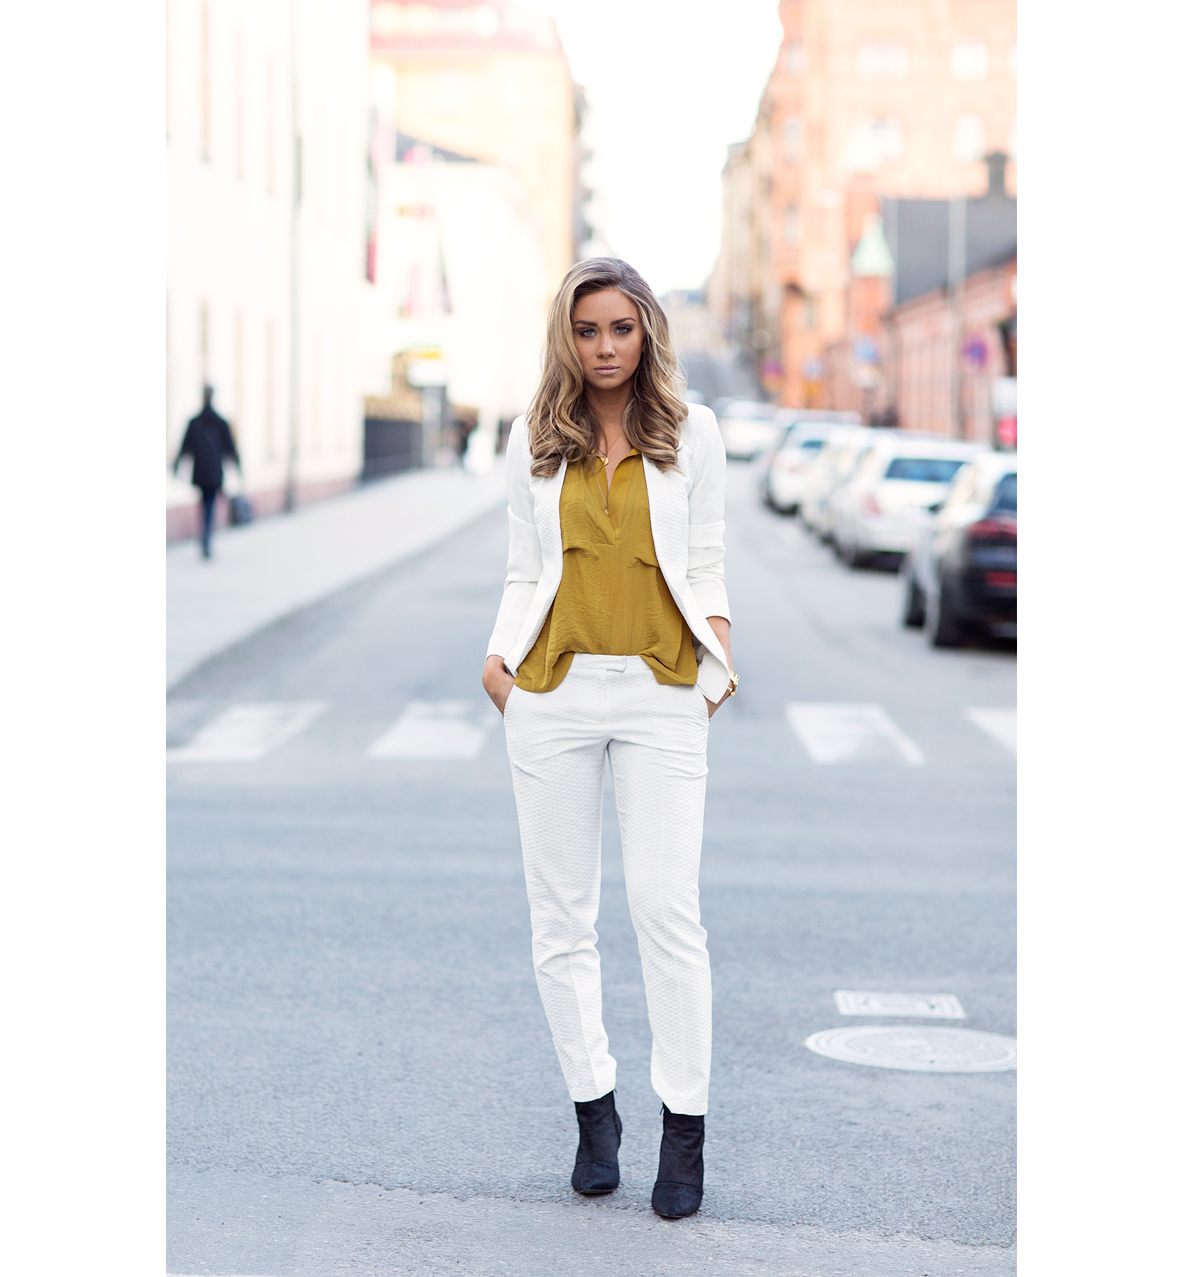 Lisa Olsson is wearing a mustard yellow H&M shirt